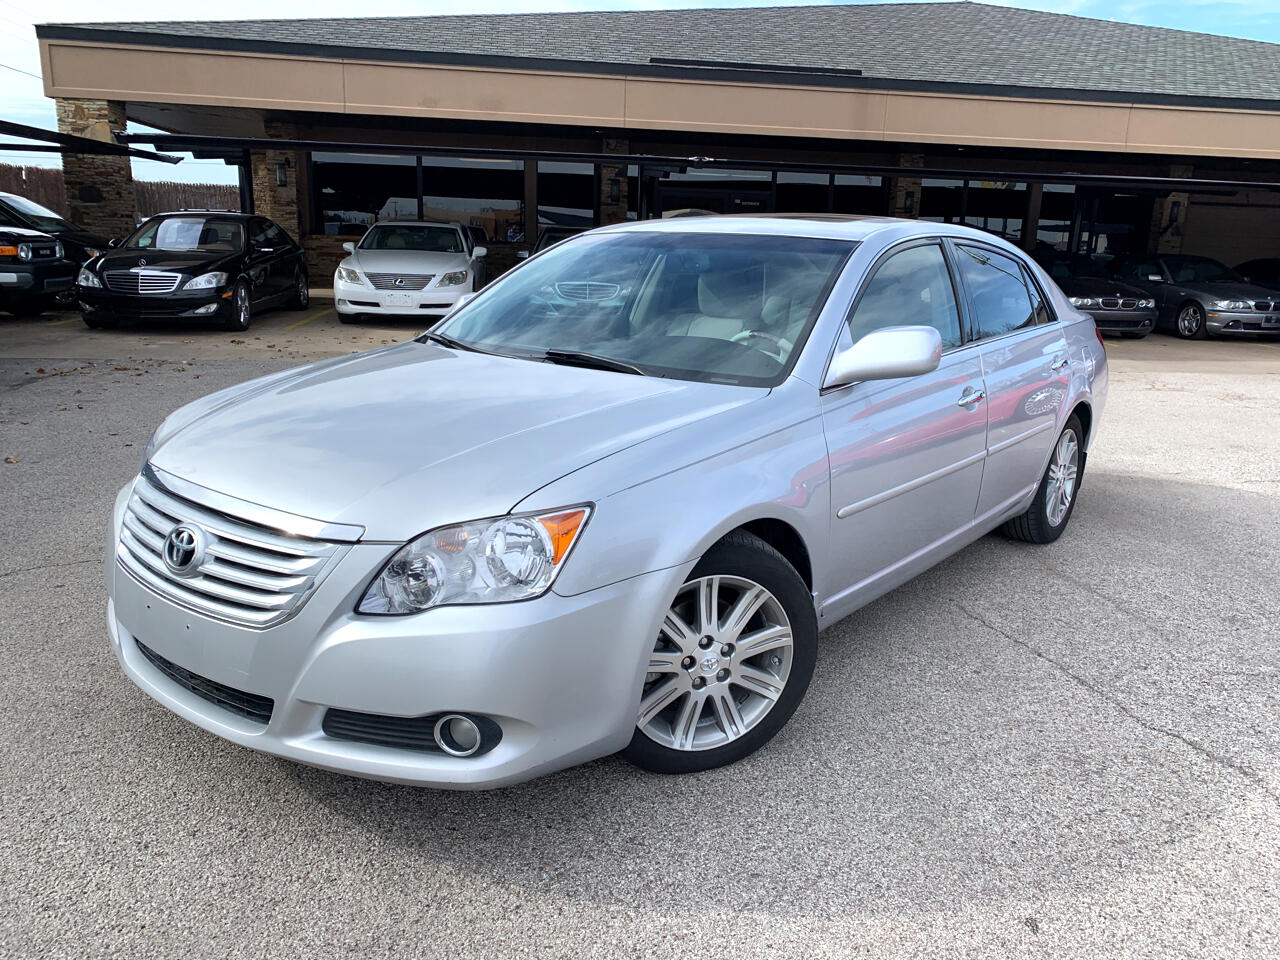 Toyota Avalon 4dr Sdn Limited (Natl) 2010